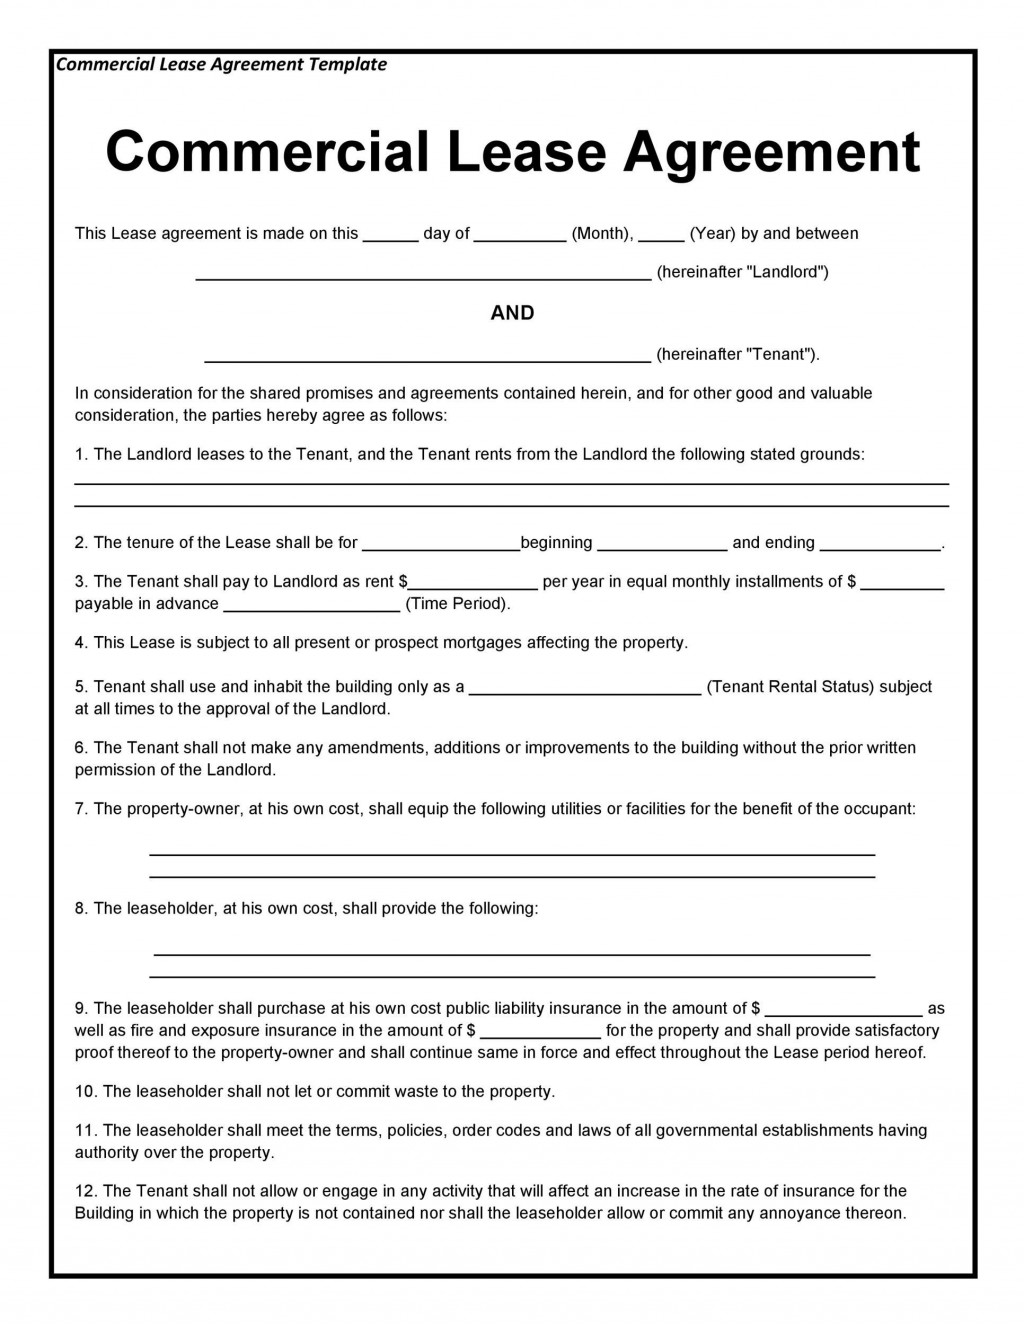 002 Unusual Office Lease Agreement Template Image  Free Property WordLarge